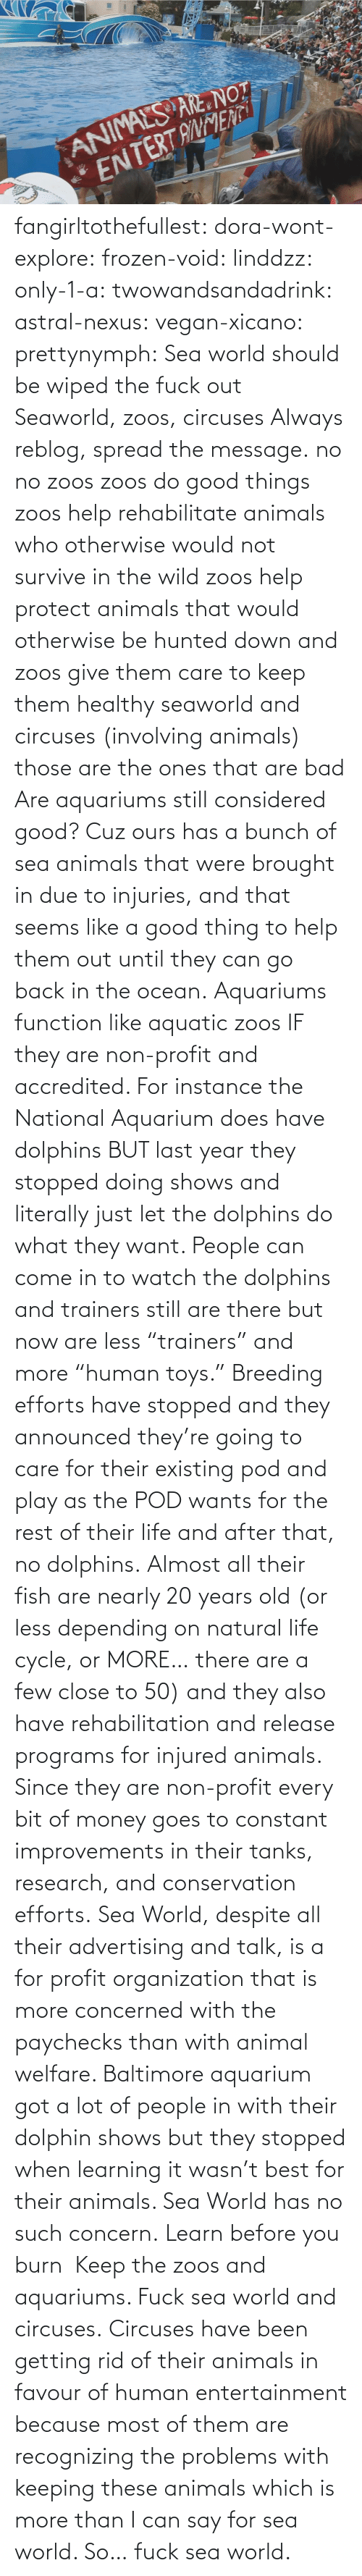 "People In: fangirltothefullest:  dora-wont-explore:  frozen-void:  linddzz:  only-1-a:  twowandsandadrink:  astral-nexus:  vegan-xicano:  prettynymph:  Sea world should be wiped the fuck out  Seaworld, zoos, circuses  Always reblog, spread the message.  no no zoos zoos do good things zoos help rehabilitate animals who otherwise would not survive in the wild zoos help protect animals that would otherwise be hunted down and zoos give them care to keep them healthy seaworld and circuses (involving animals) those are the ones that are bad  Are aquariums still considered good? Cuz ours has a bunch of sea animals that were brought in due to injuries, and that seems like a good thing to help them out until they can go back in the ocean.  Aquariums function like aquatic zoos IF they are non-profit and accredited. For instance the National Aquarium does have dolphins BUT last year they stopped doing shows and literally just let the dolphins do what they want. People can come in to watch the dolphins and trainers still are there but now are less ""trainers"" and more ""human toys."" Breeding efforts have stopped and they announced they're going to care for their existing pod and play as the POD wants for the rest of their life and after that, no dolphins. Almost all their fish are nearly 20 years old (or less depending on natural life cycle, or MORE… there are a few close to 50) and they also have rehabilitation and release programs for injured animals. Since they are non-profit every bit of money goes to constant improvements in their tanks, research, and conservation efforts. Sea World, despite all their advertising and talk, is a for profit organization that is more concerned with the paychecks than with animal welfare. Baltimore aquarium got a lot of people in with their dolphin shows but they stopped when learning it wasn't best for their animals. Sea World has no such concern.  Learn before you burn   Keep the zoos and aquariums. Fuck sea world and circuses.  Circuses have been getting rid of  their animals in favour of human entertainment because most of them are recognizing the problems with keeping these animals which is more than I can say for sea world. So… fuck sea world."